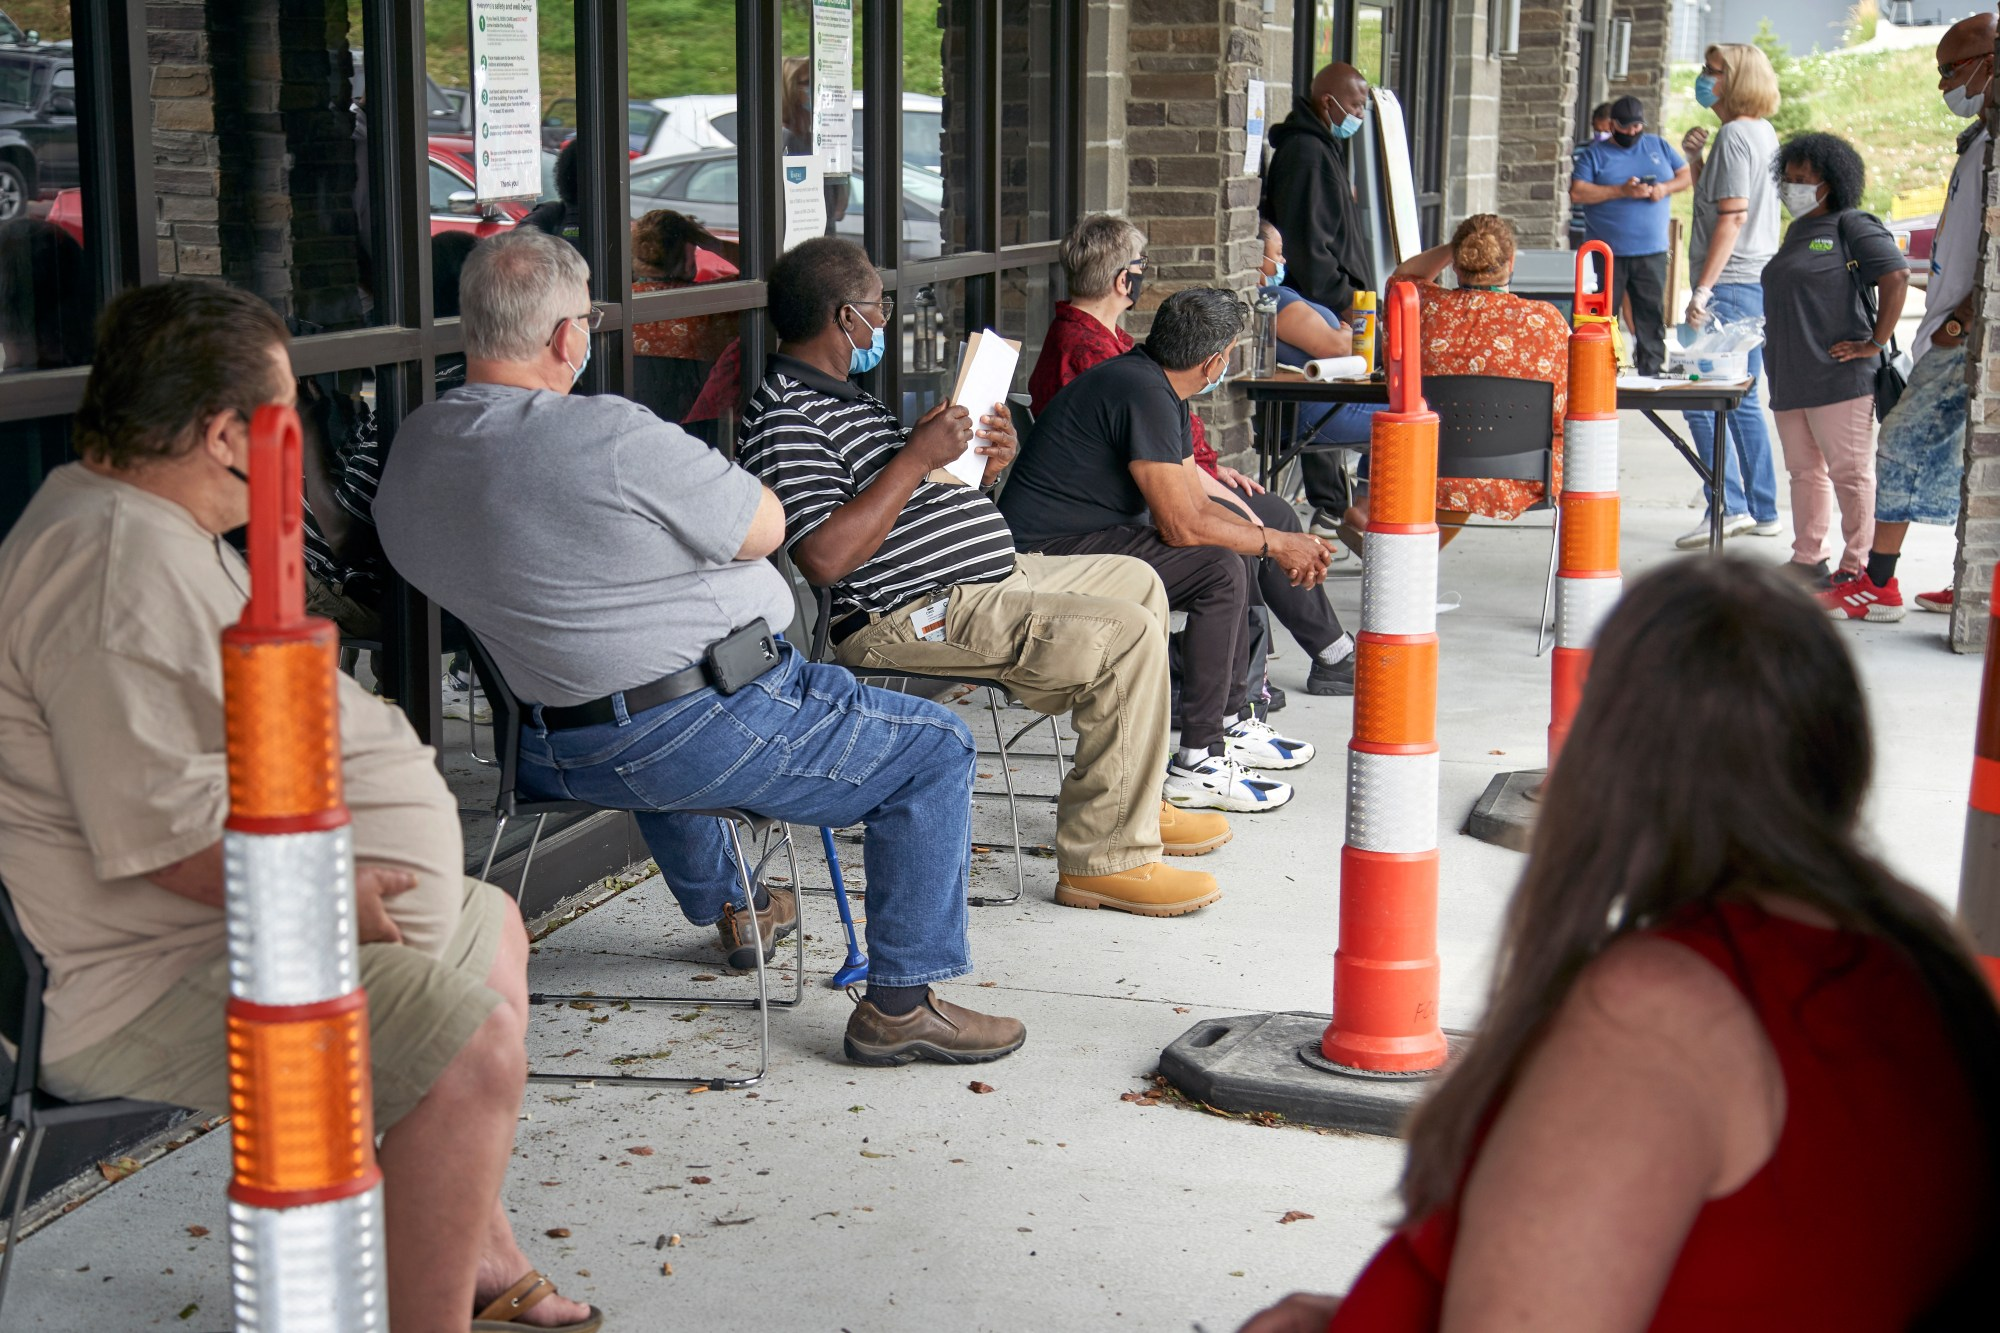 In this July 15, 2020, file photo, job seekers socially distance as they wait to be called into the Heartland Workforce Solutions office in Omaha, Neb. For the first time in nearly 50 years, older workers are facing higher unemployment than mid-career workers, according to a study released on Oct. 20, 2020. (Nati Harnik/Associated Press)